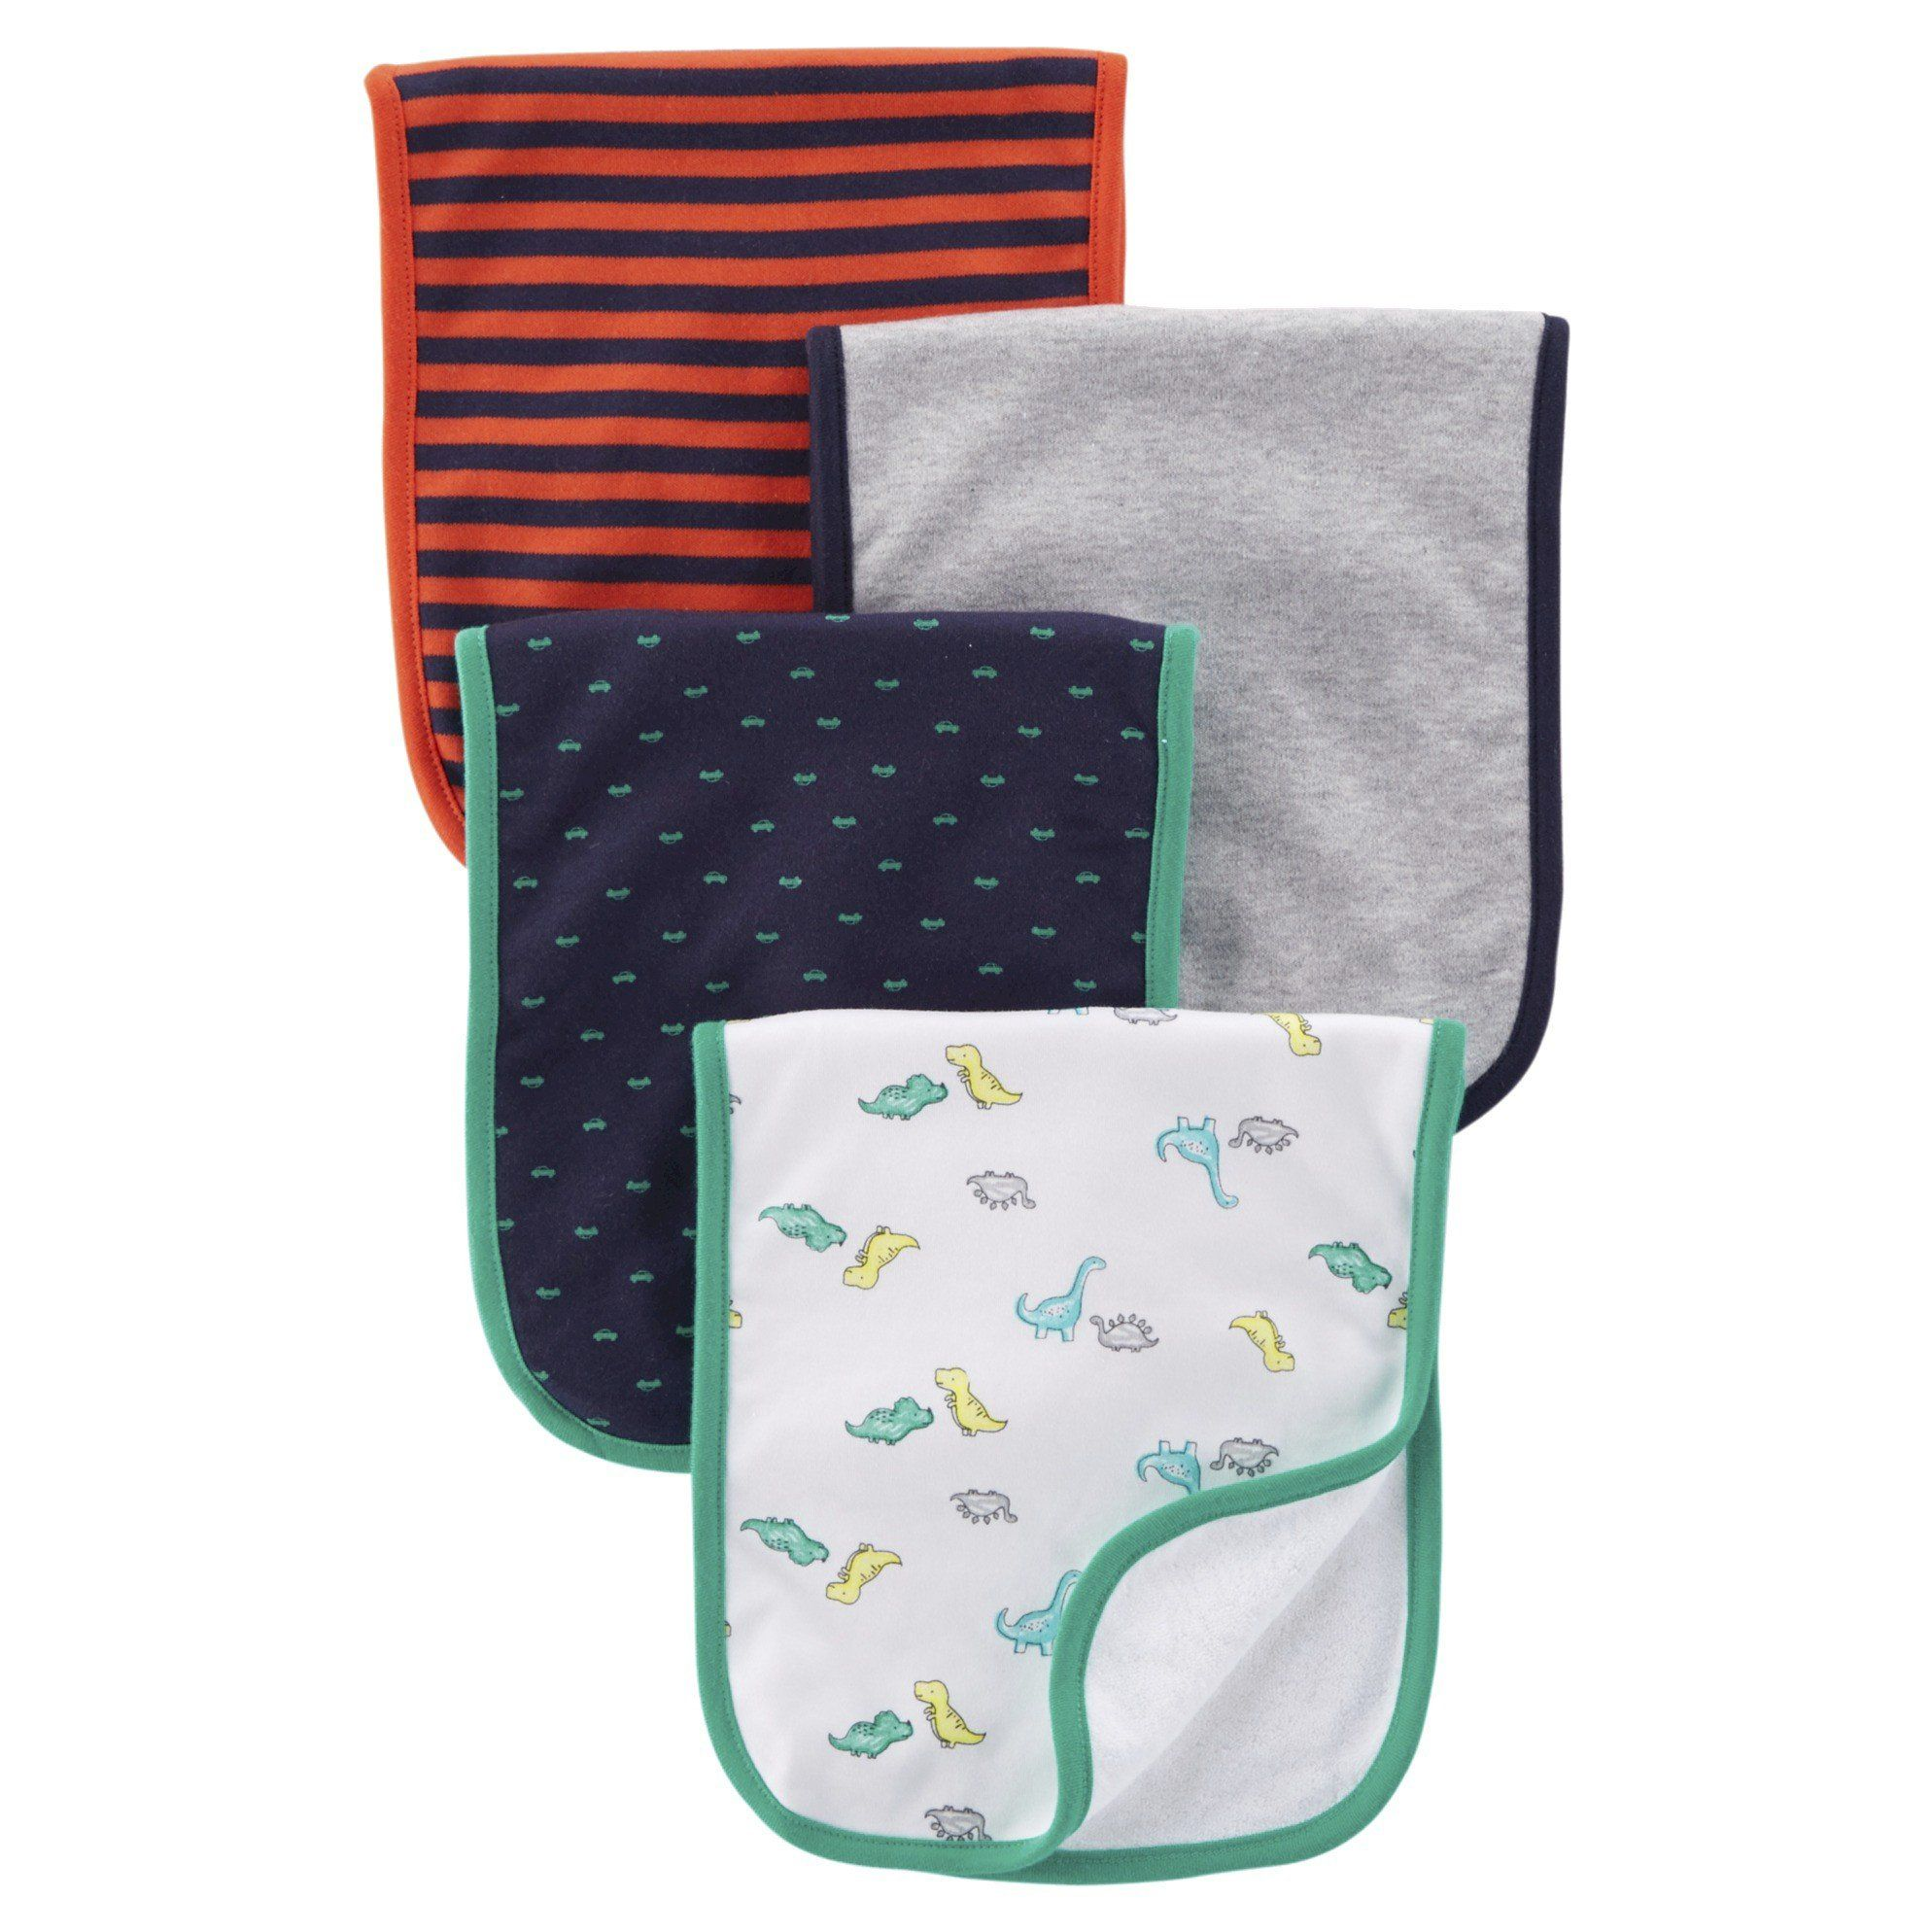 fcfadd29d Amazon.com: Just One You by Carter's - Baby 4 Pack Burp Cloth Set  (Dinosaurs): Clothing